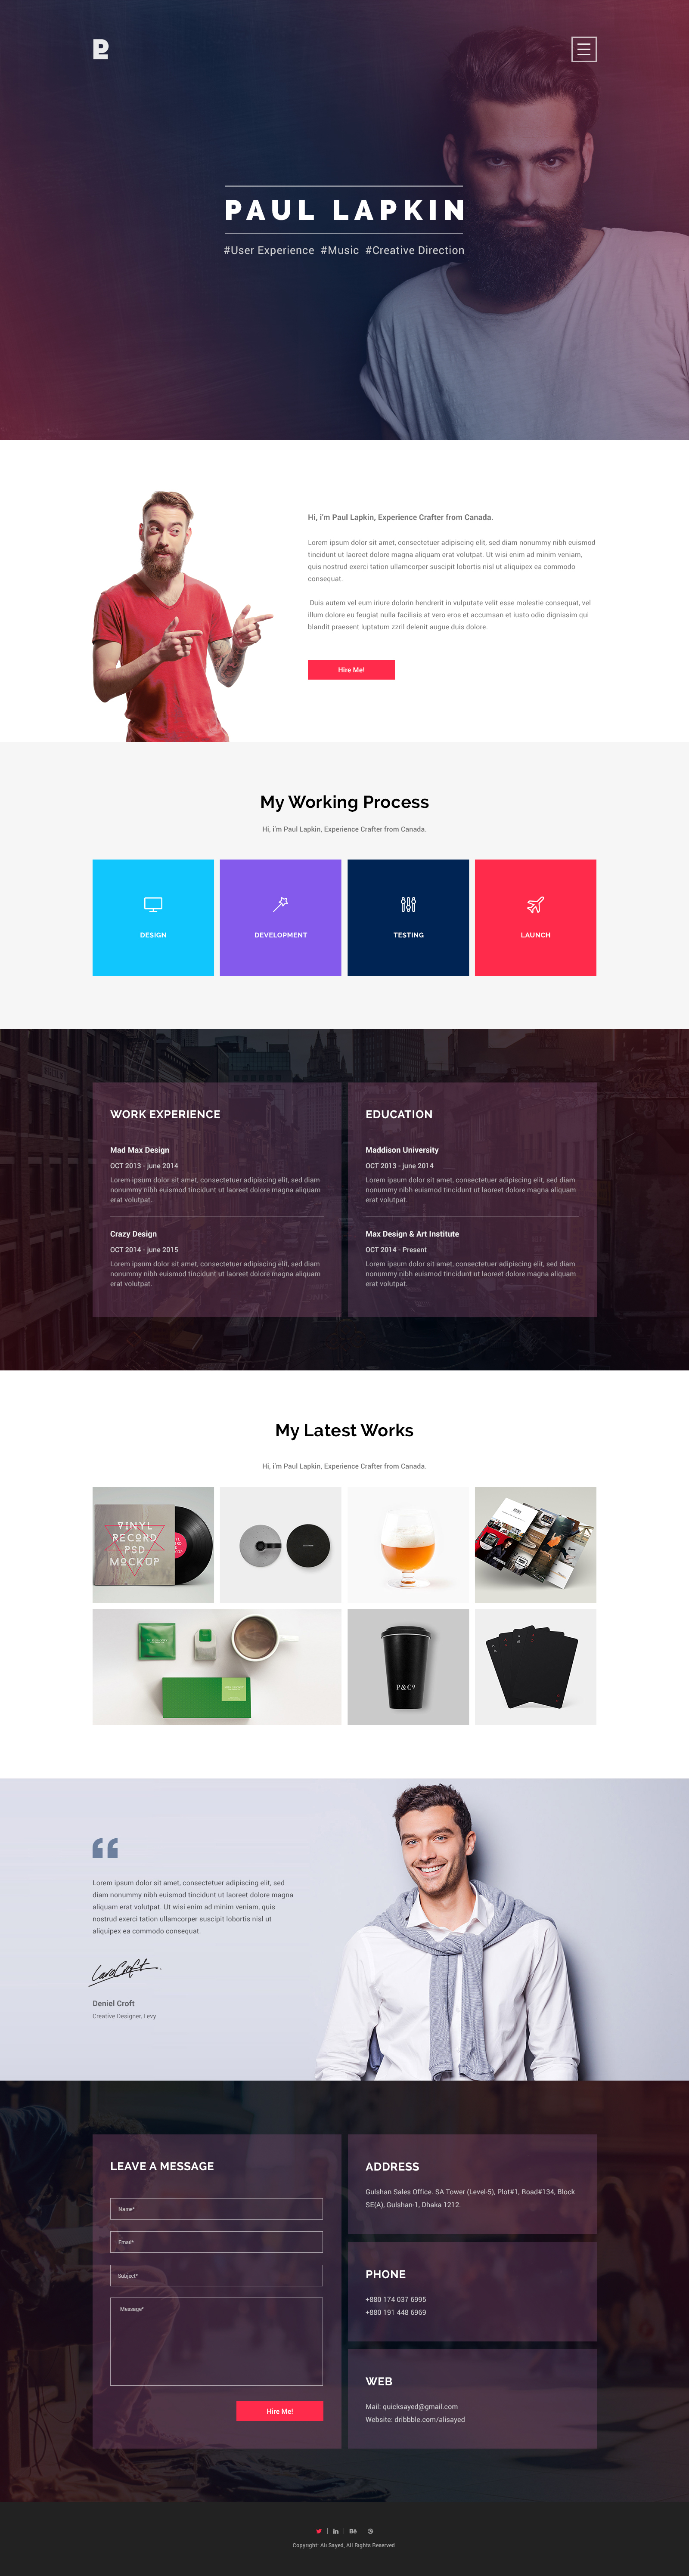 Personal Site  Free Psd On Behance  Template